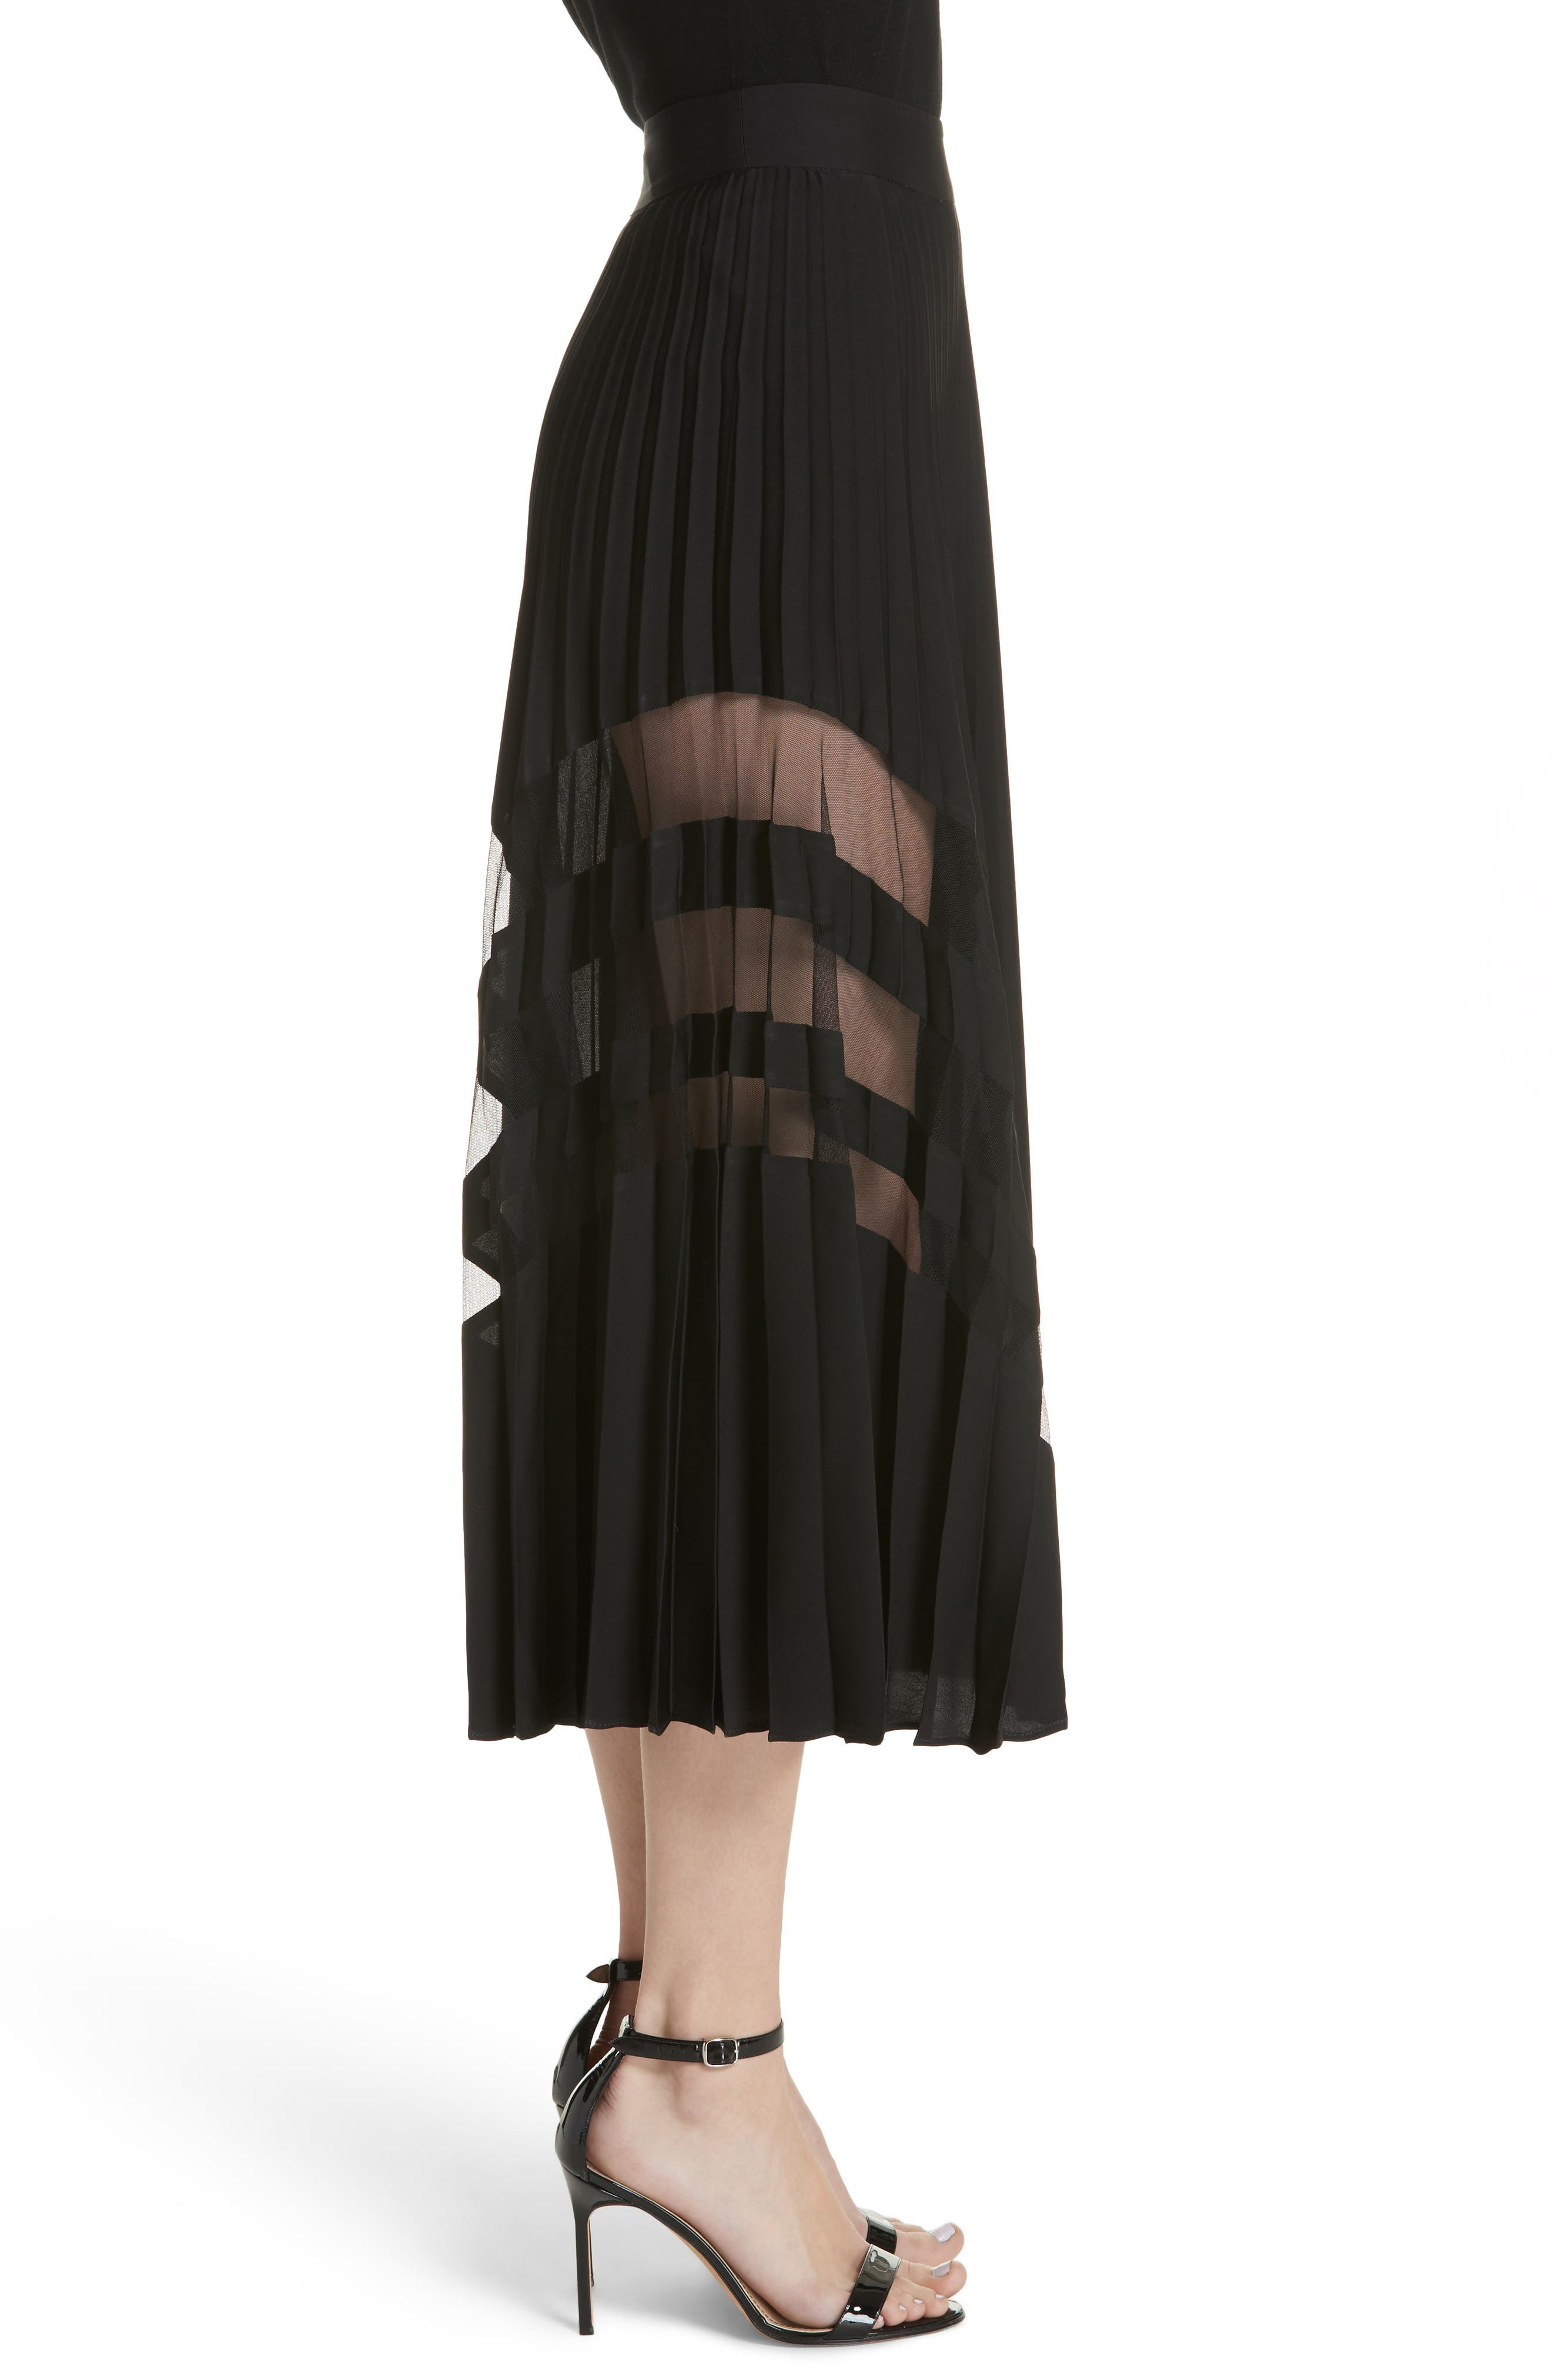 MILLY, Pleated Maxi Skirt, Alternate thumbnail 3, color, 007